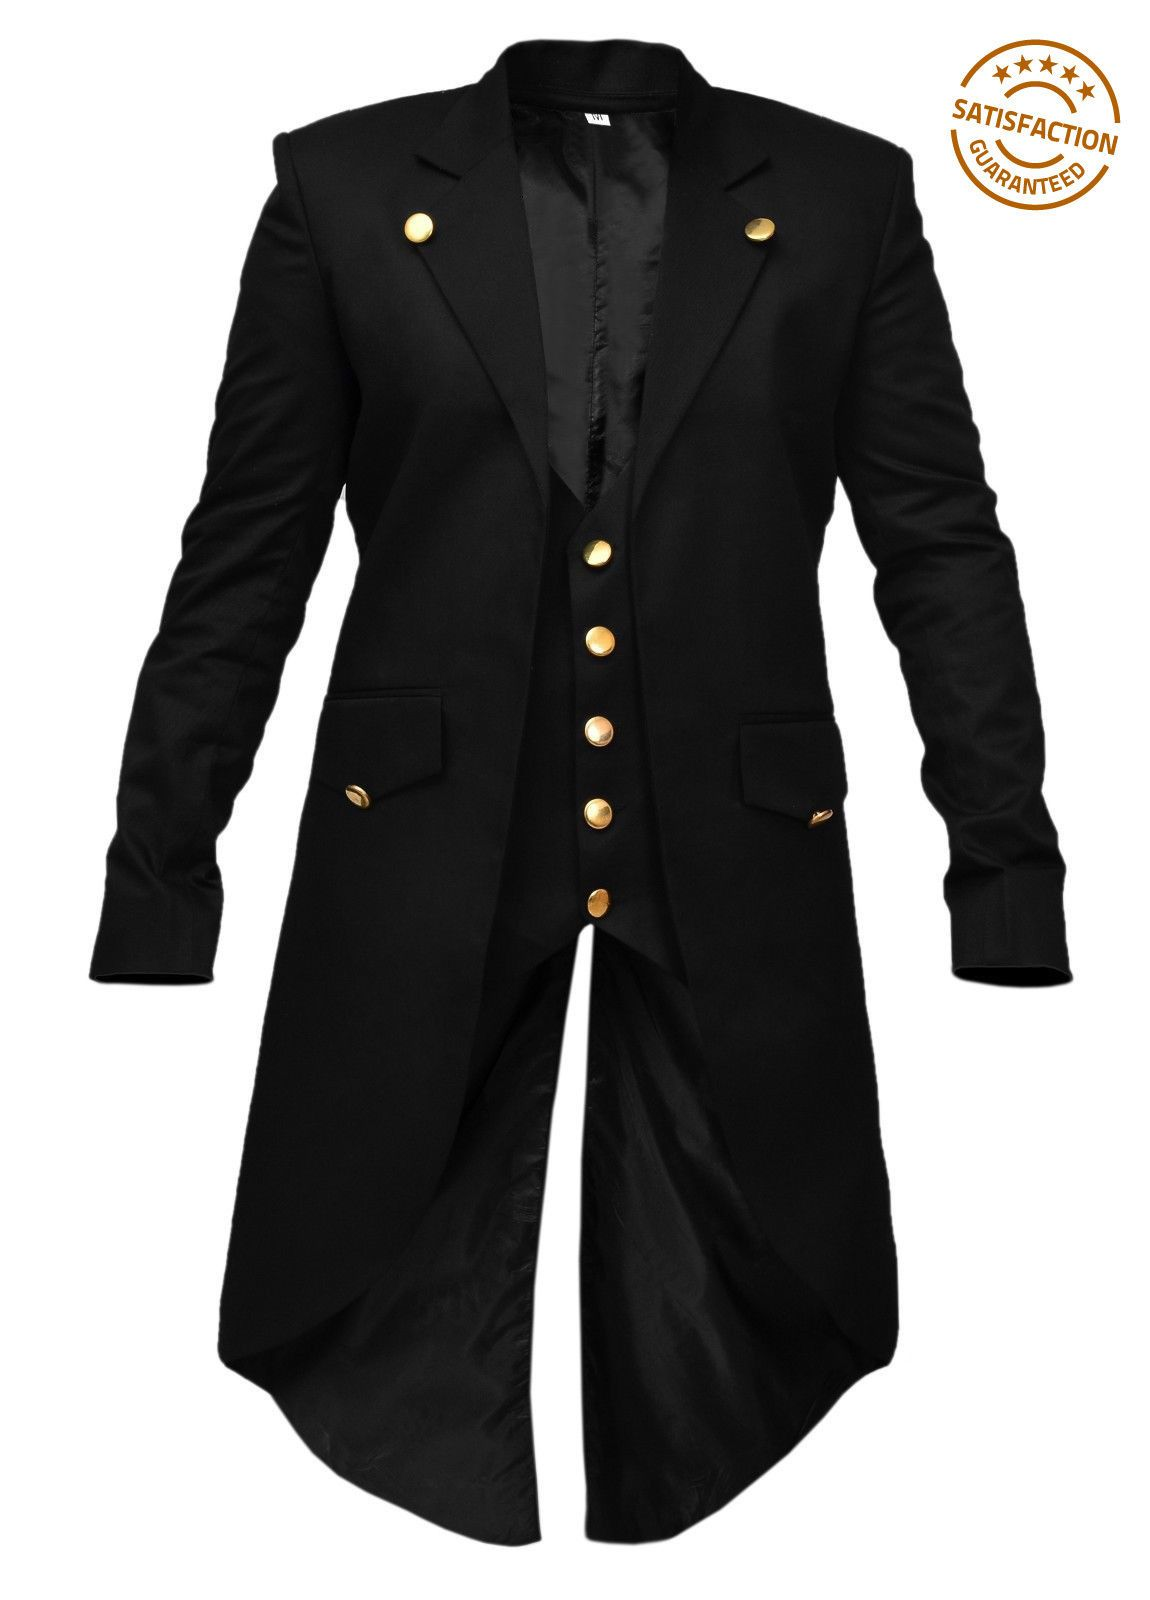 a040b1094f1 New Stock Mens Banned Steampunk Tailcoat Jacket Black Gothic Victorian Coat